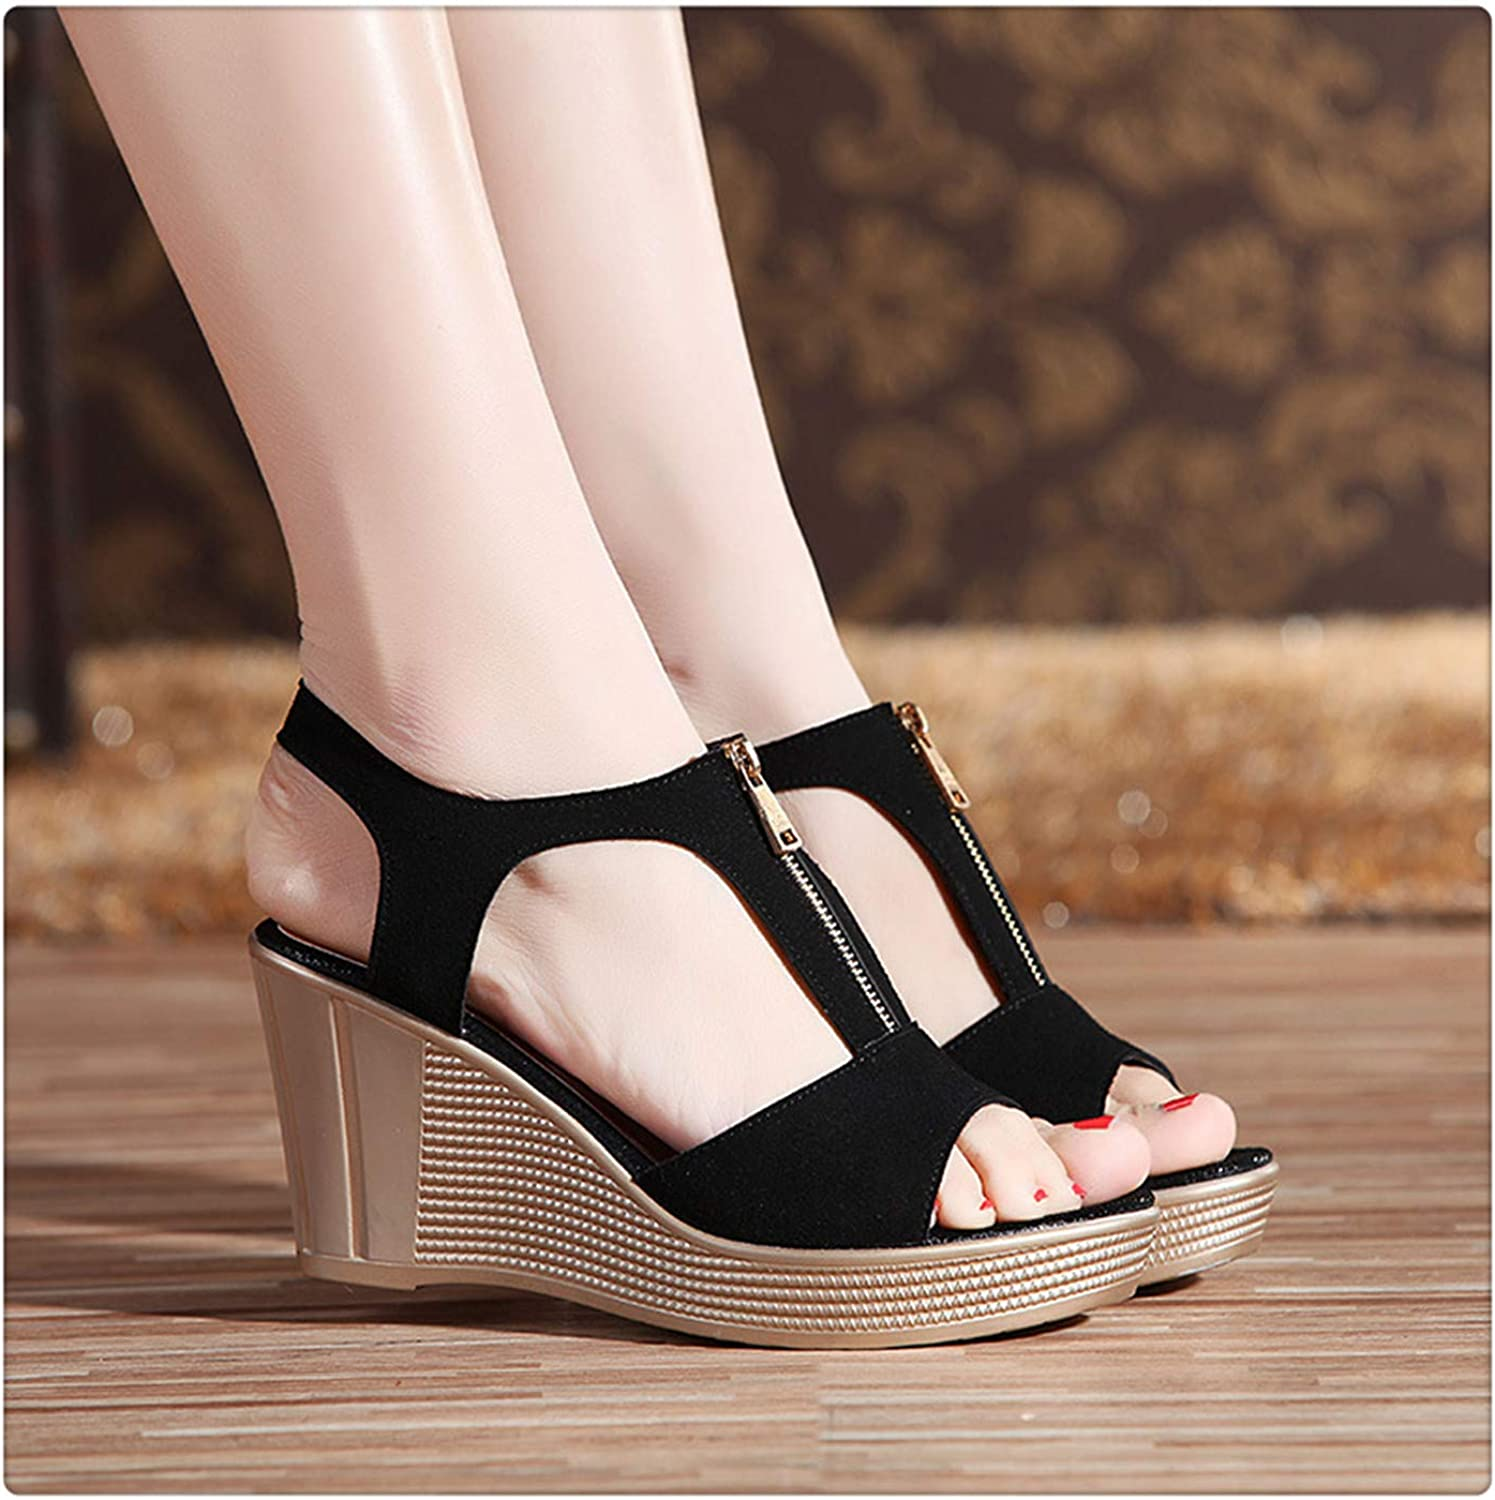 ANGERT& New Fish Mouth Classic Non-Slip Wedge Women Sandals 2019 Fashion Summer Rome Sandals Women Solid color Zipper 34-43 Size Black 37